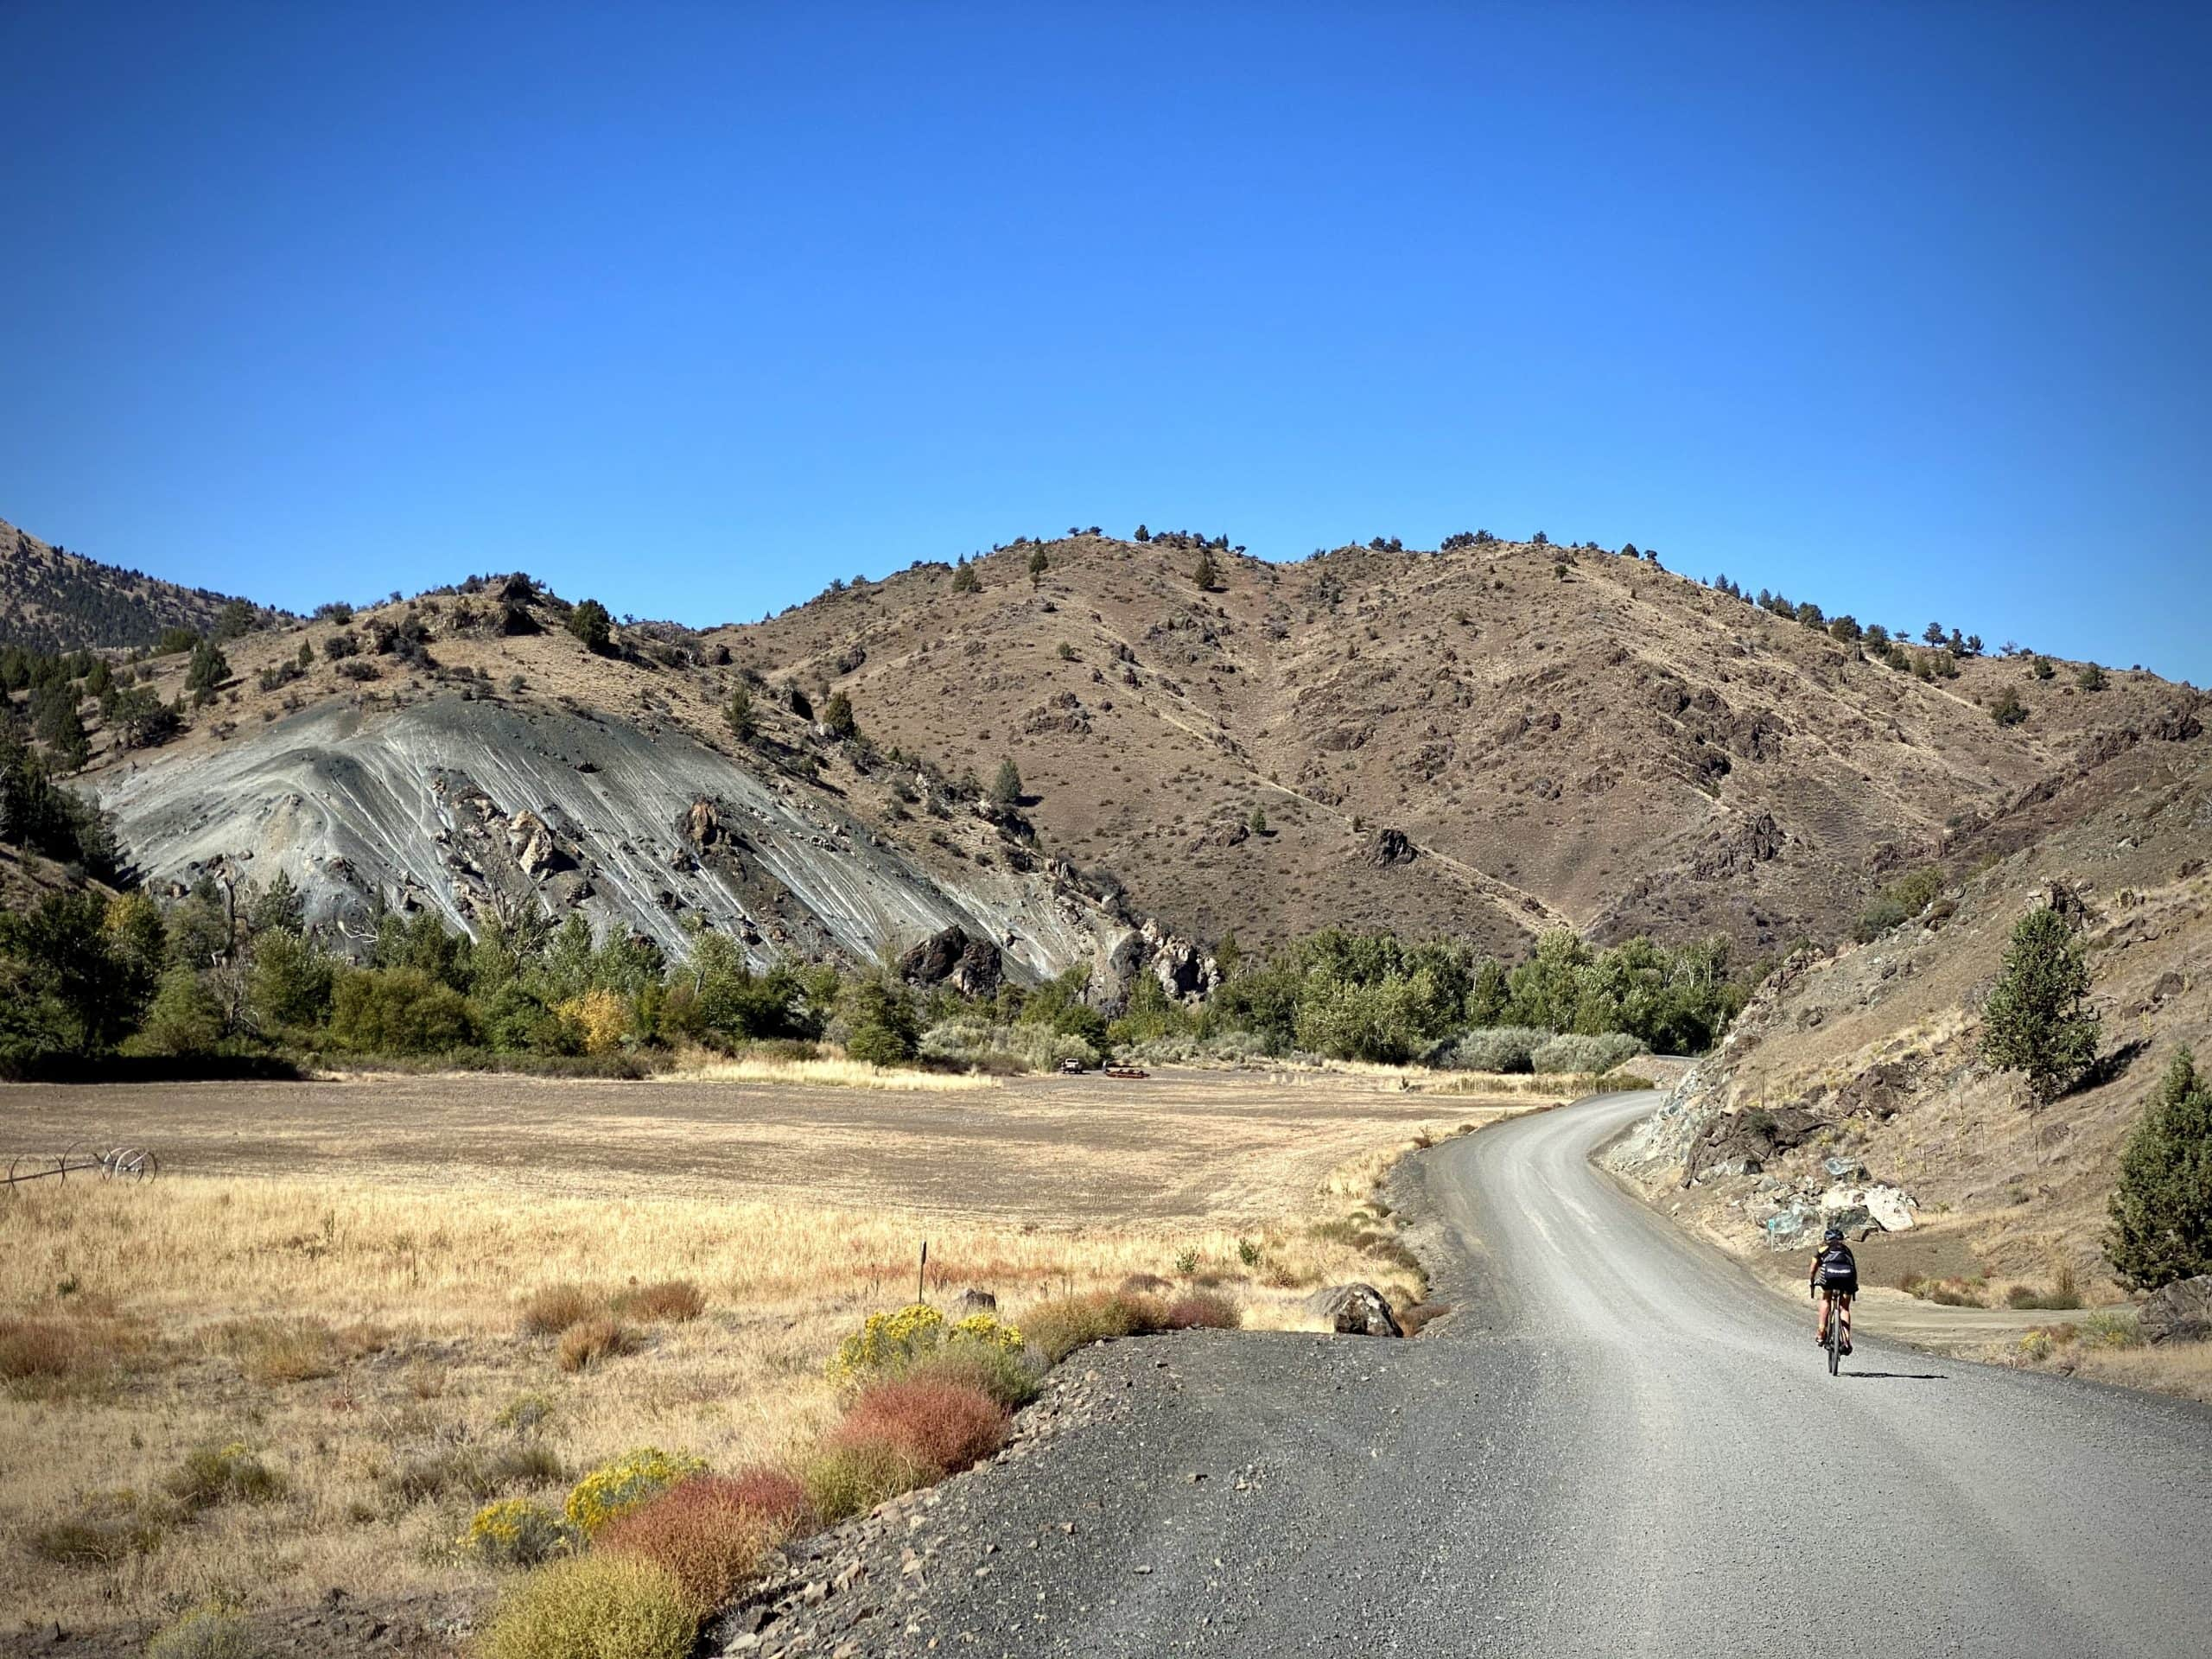 Gravel cyclist nearing the town of Dayville with colorful hills in the background.